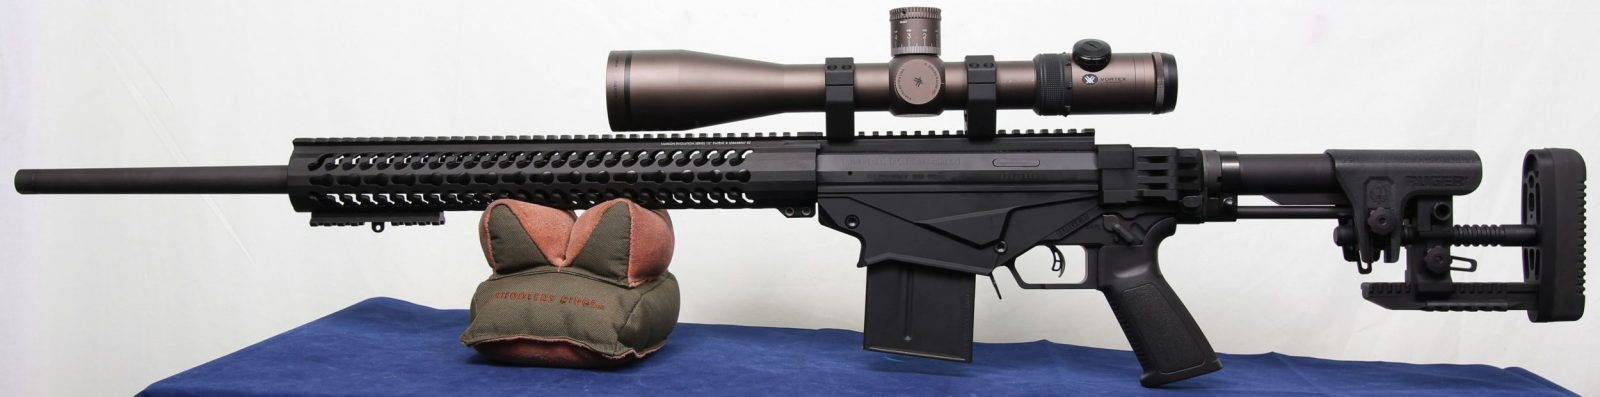 Ruger Precision Rifle Review The Hunting Gear Guy